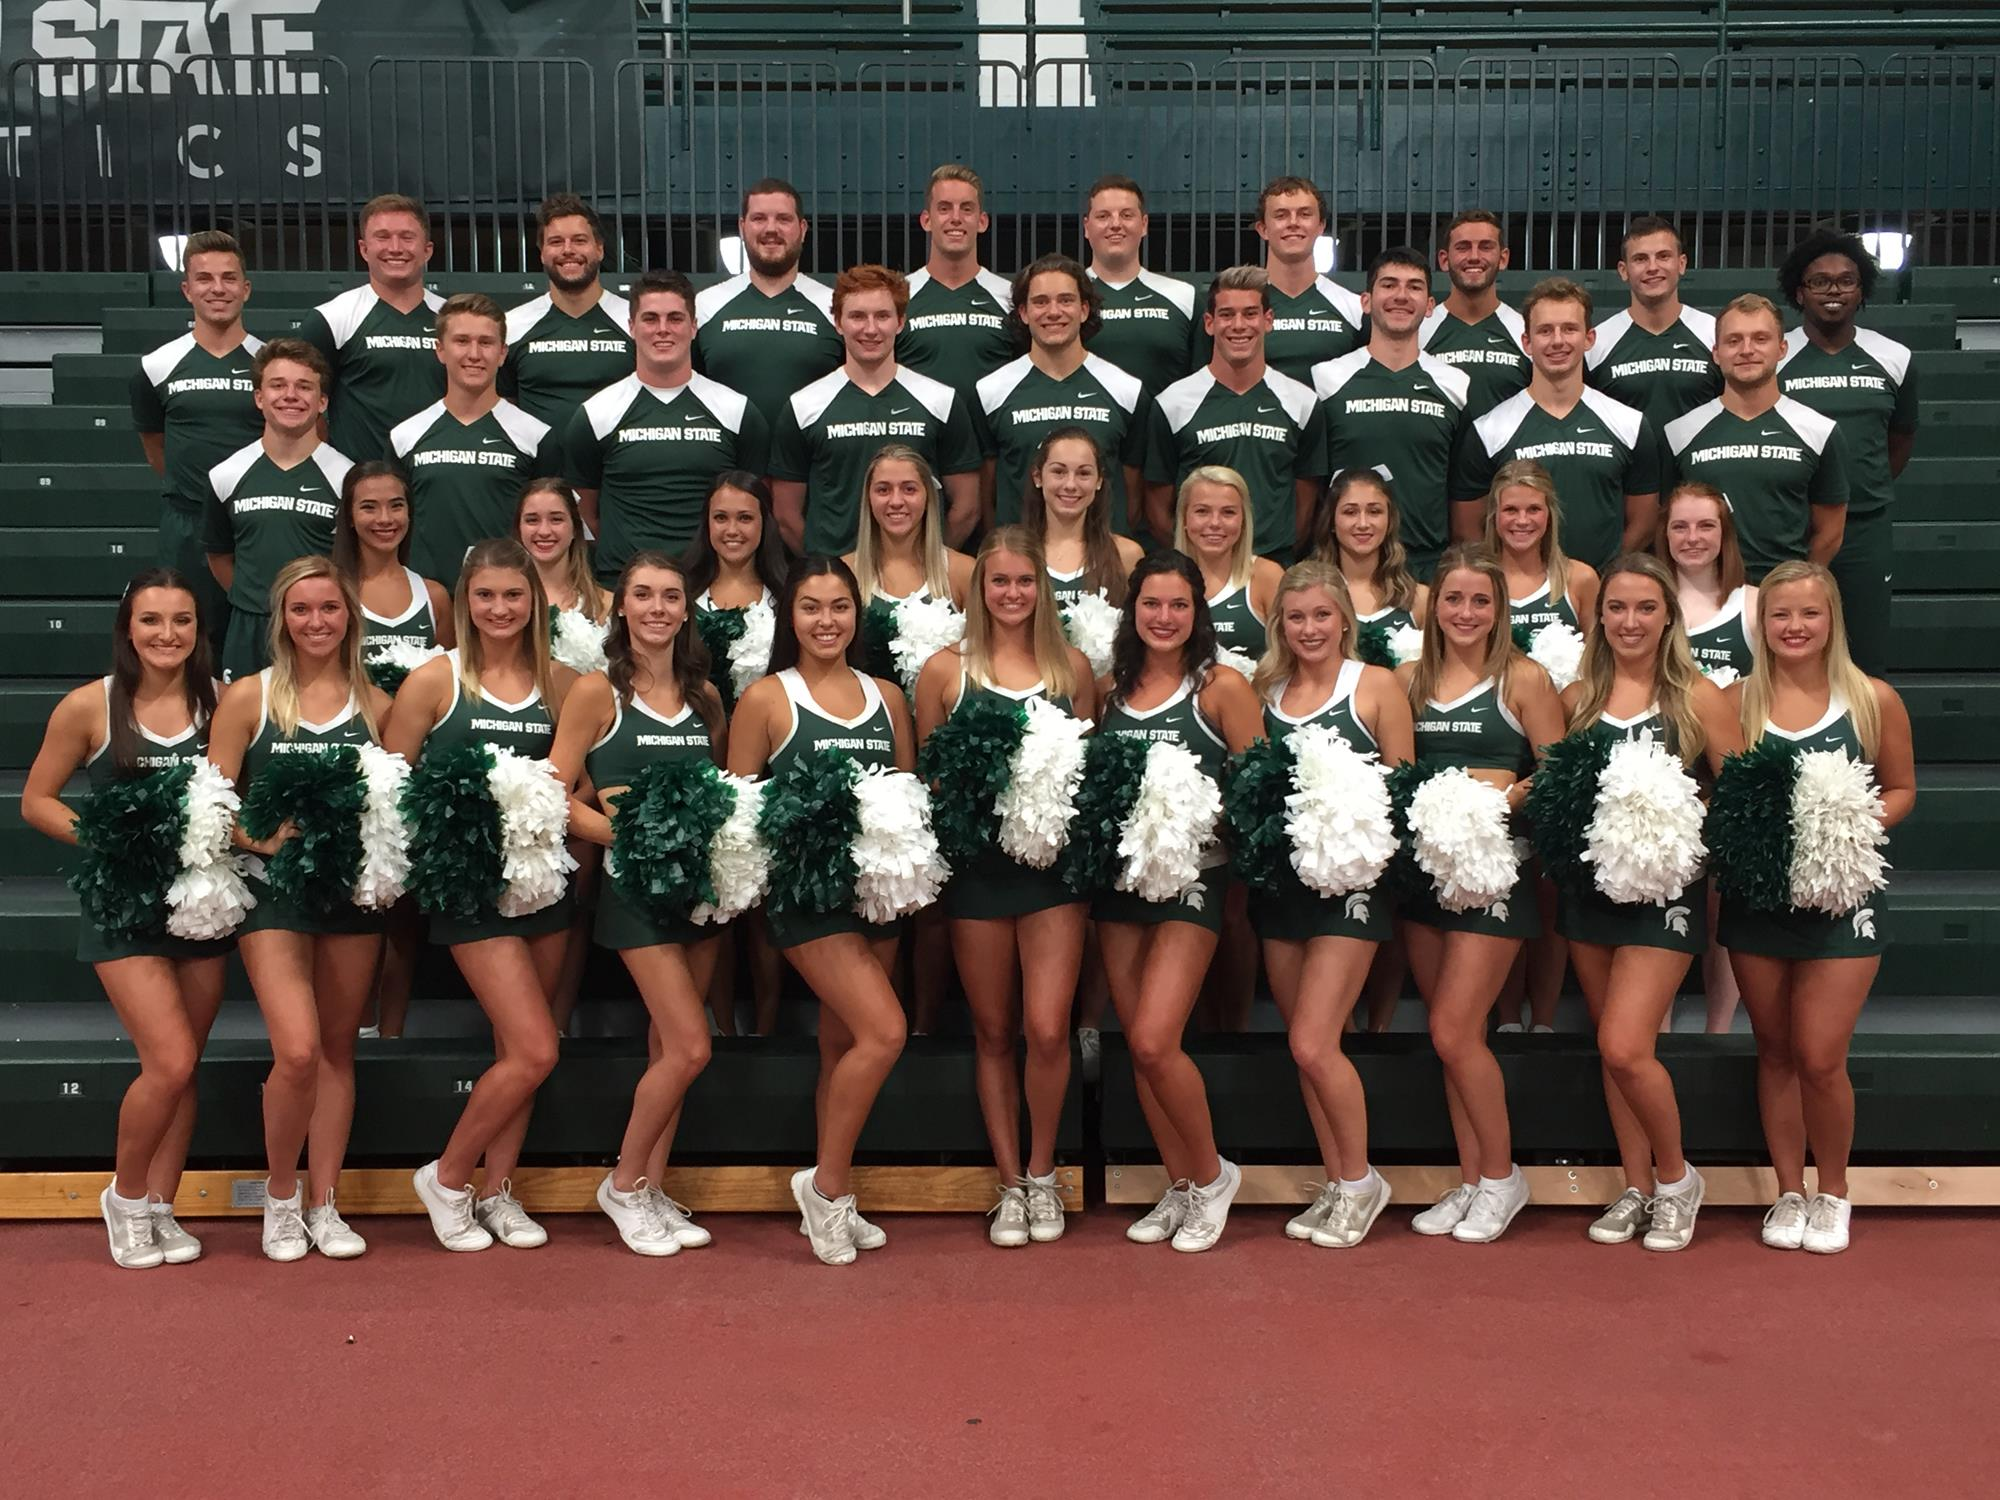 beafef6f36fbd Cheerleading - Michigan State University Athletics